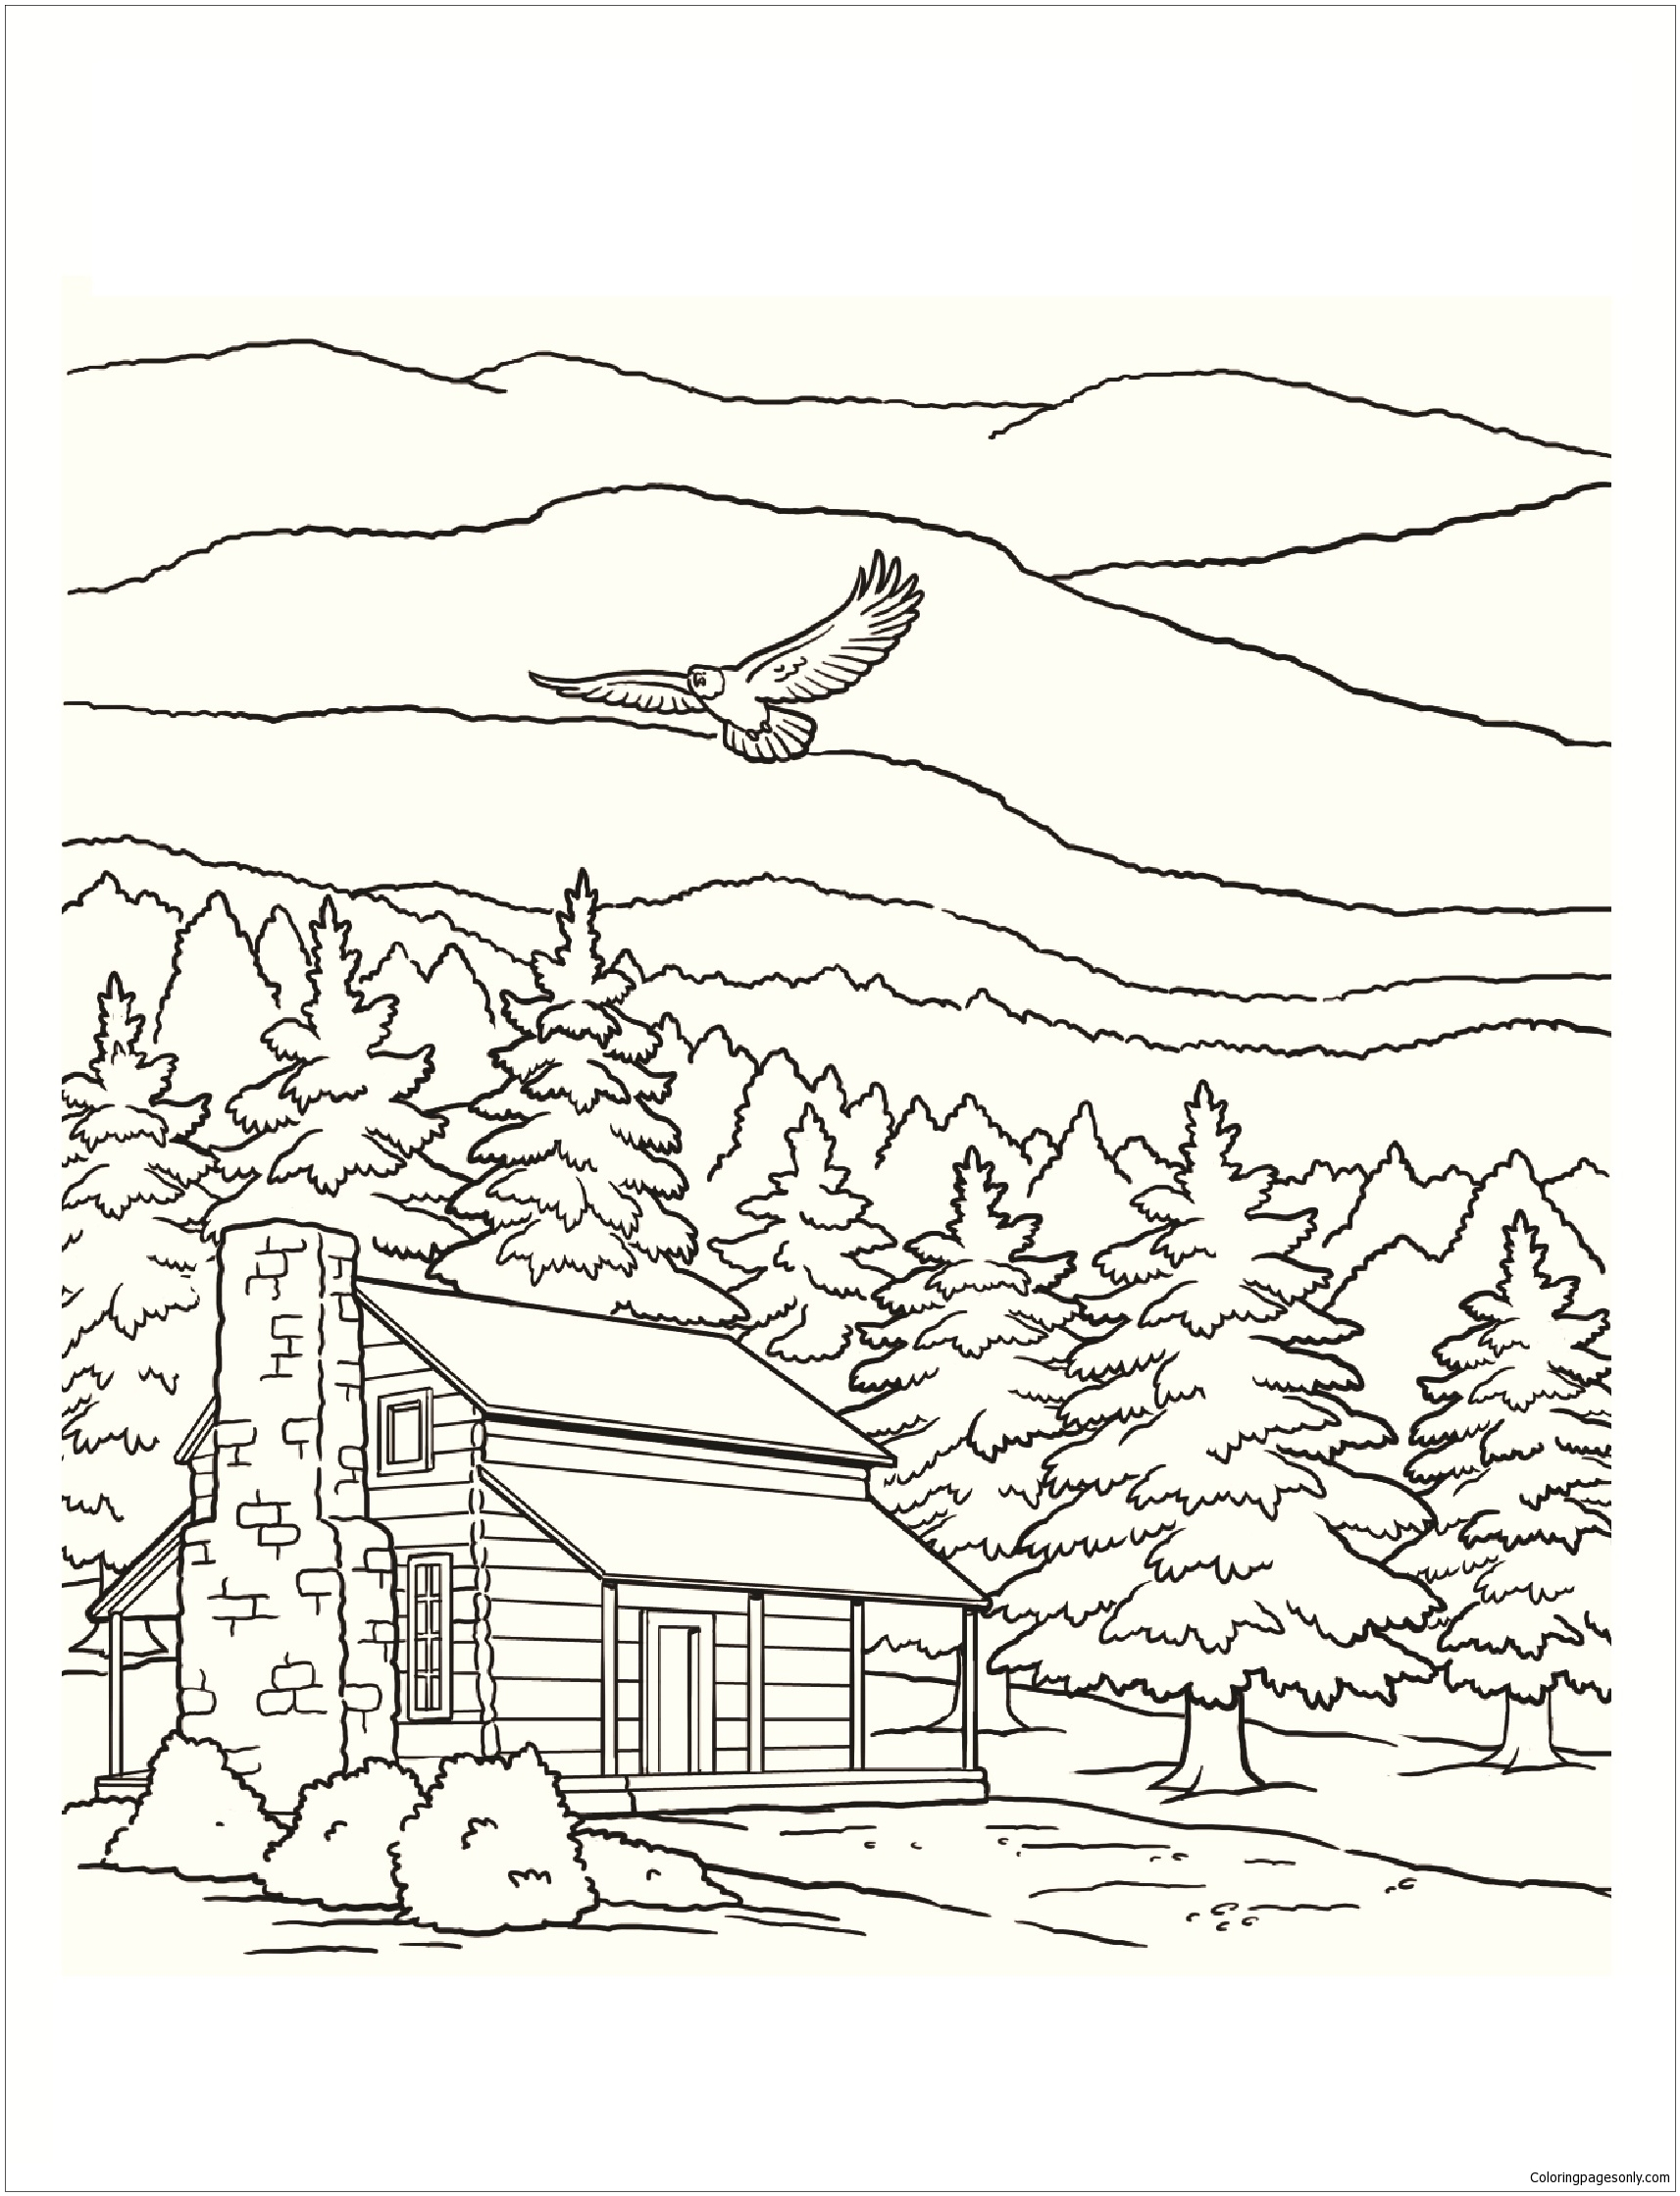 Smoky Mountains National Park Coloring Page Free Coloring Pages Online